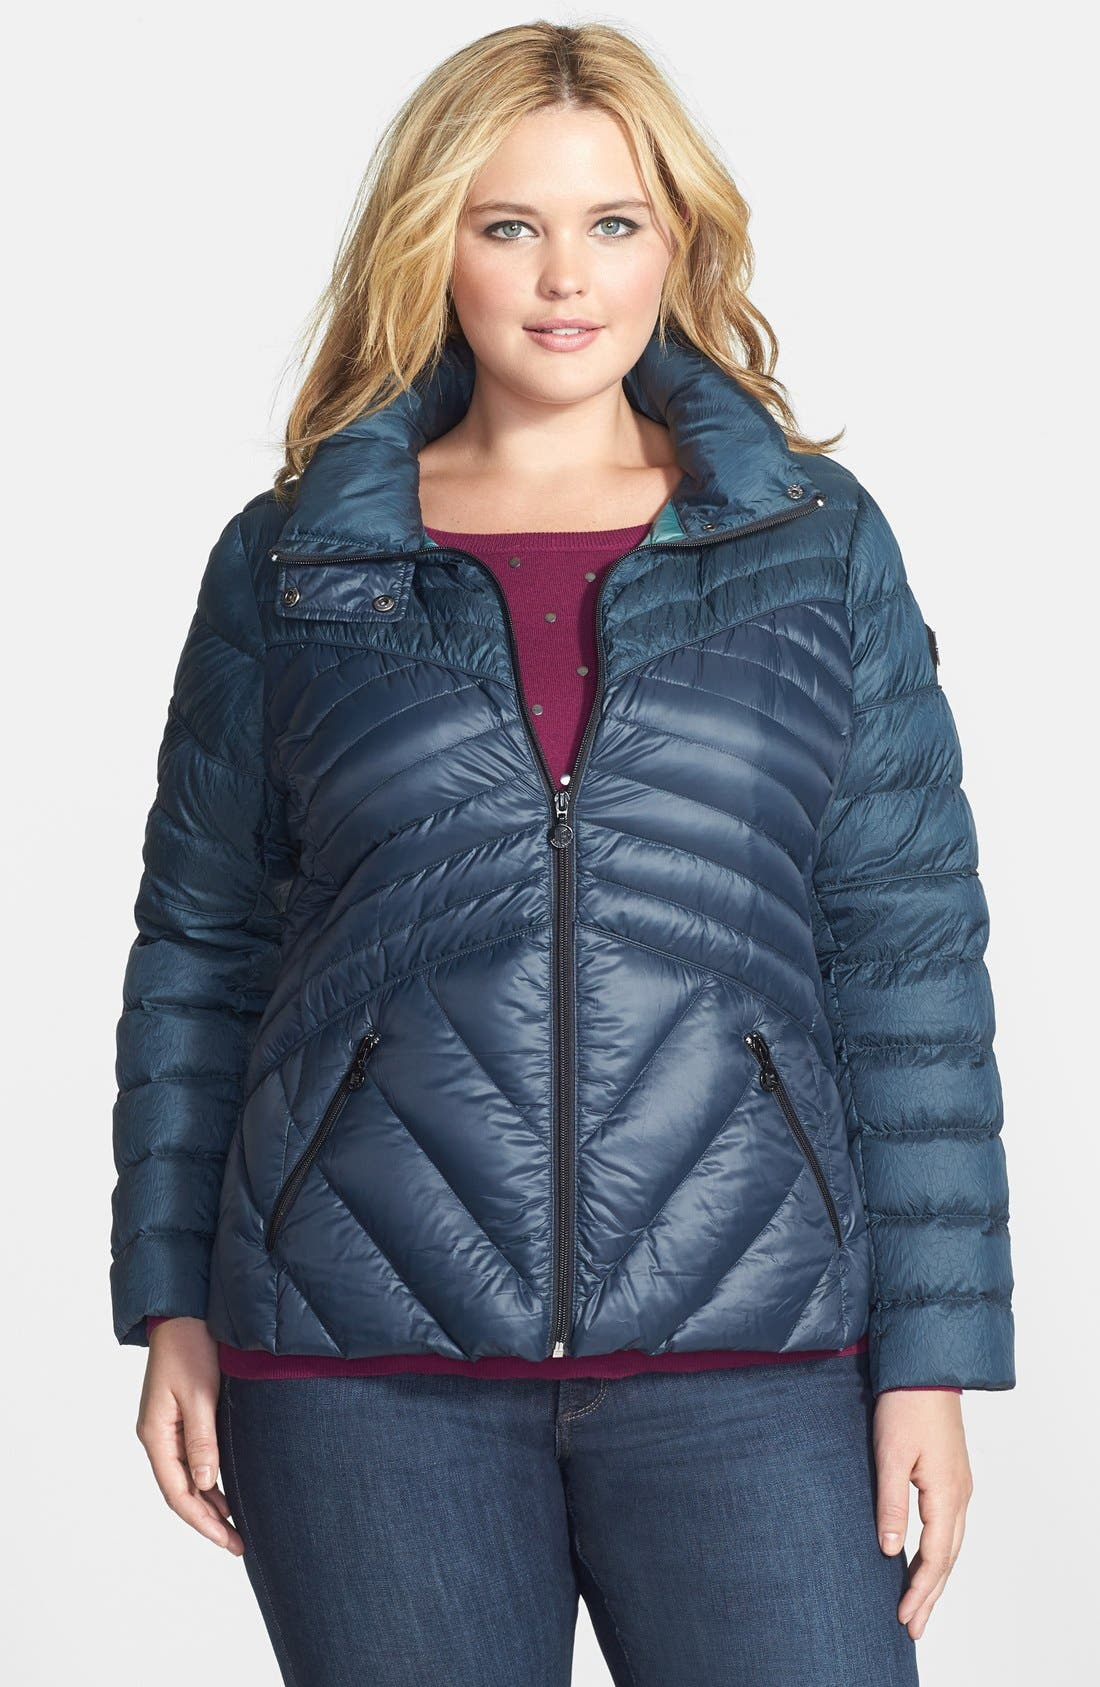 Alternate Image 1 Selected - Bernardo Two-Tone Packable Down Jacket (Plus Size)